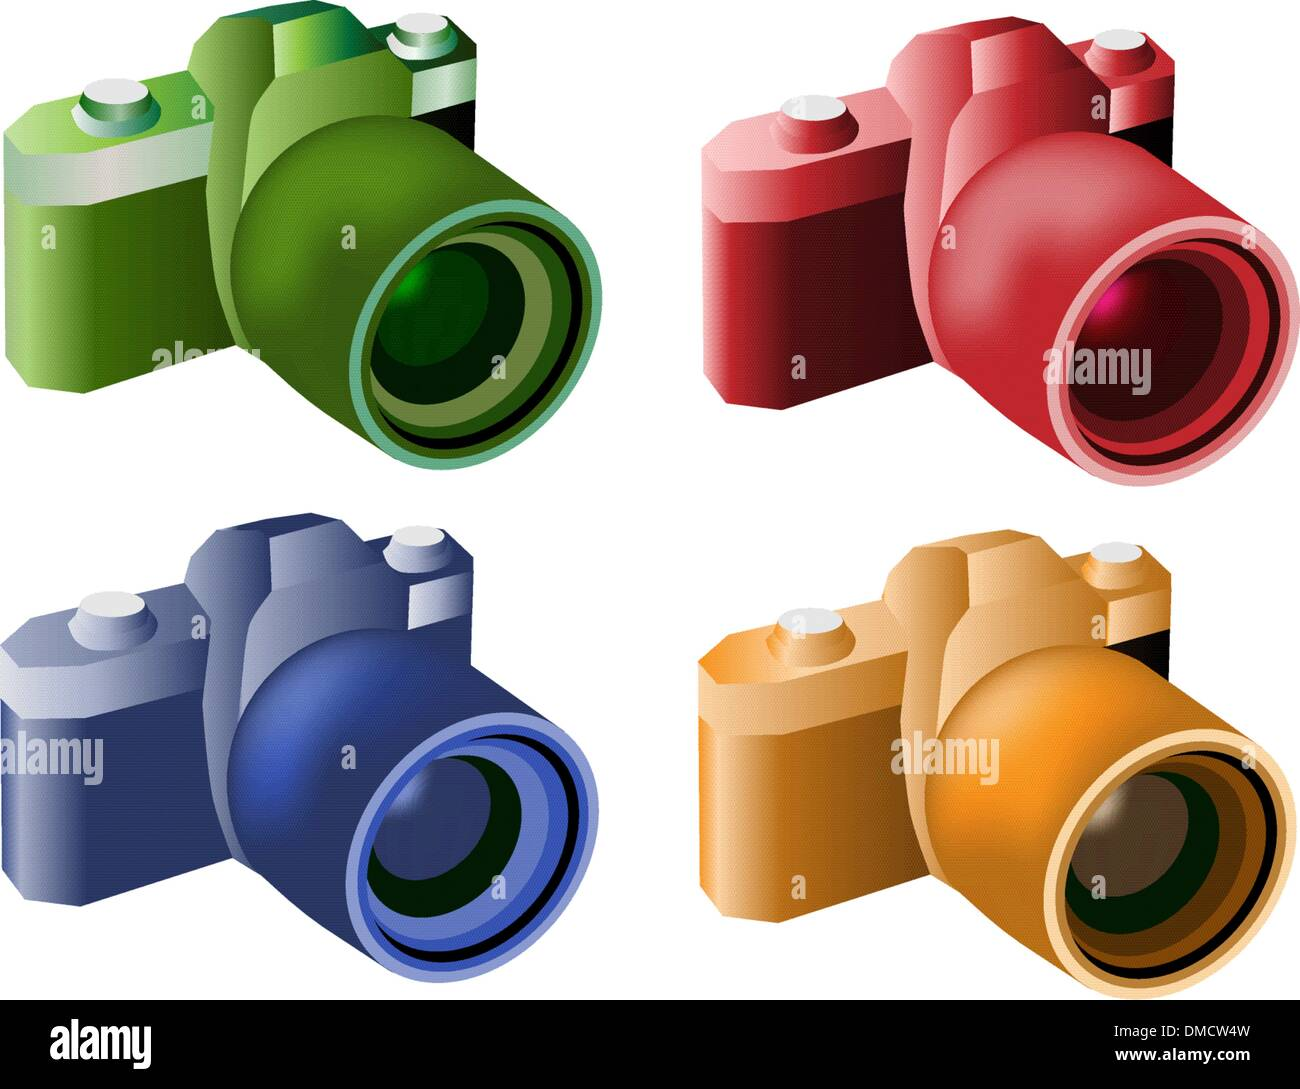 Four Color Illustration of Modern Digital Cameras - Stock Vector